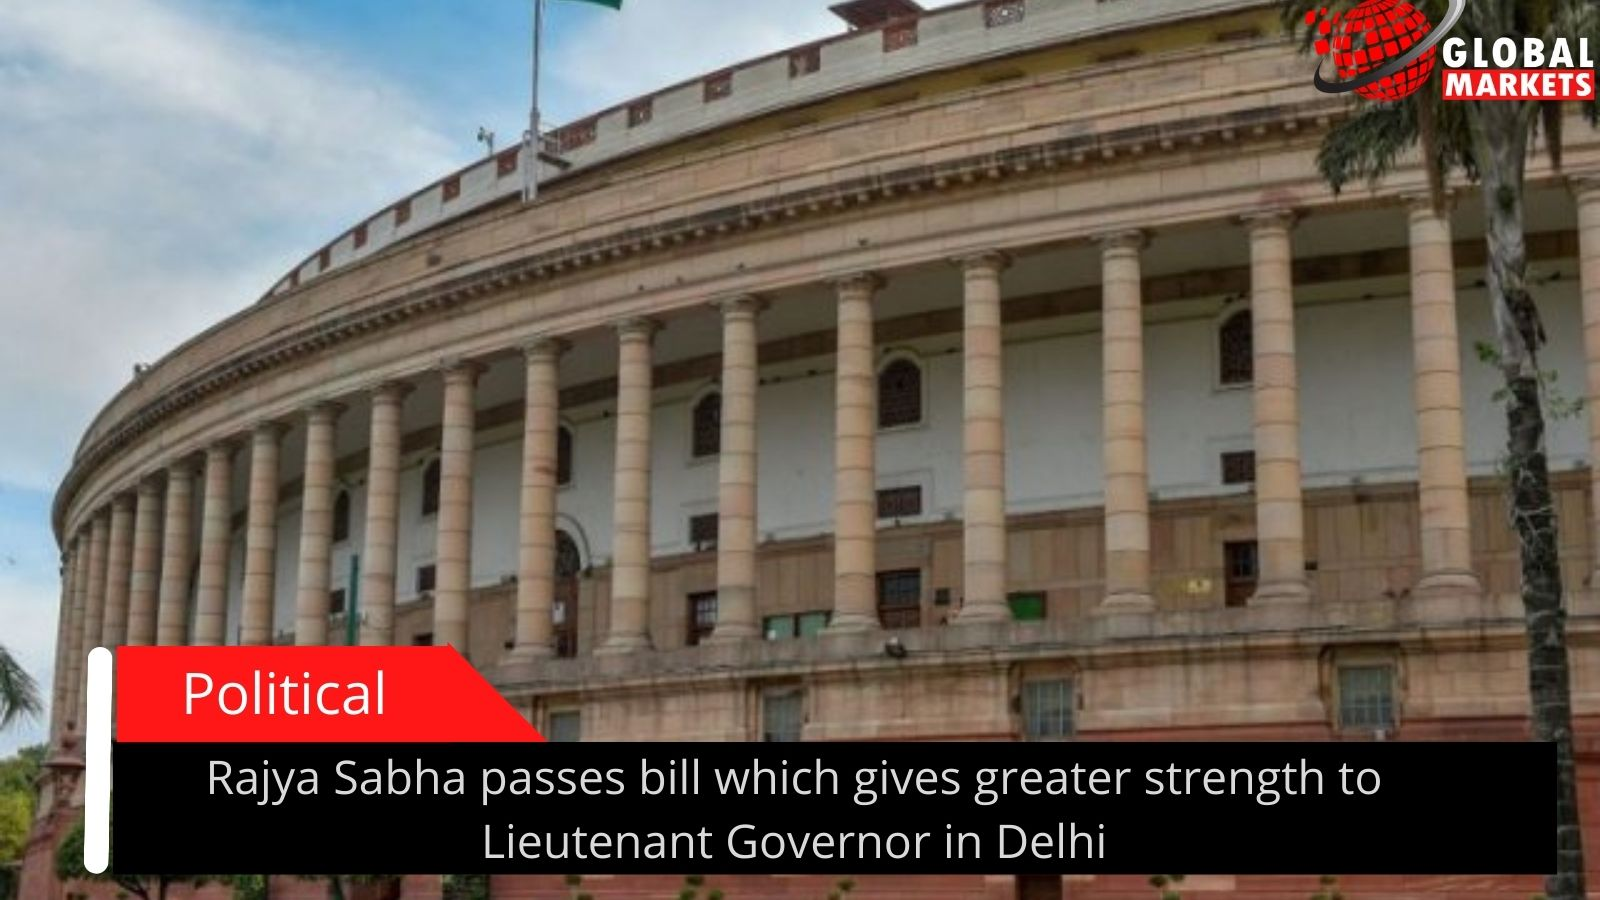 Rajya Sabha passes bill which gives greater strength to Lieutenant Governor in Delhi